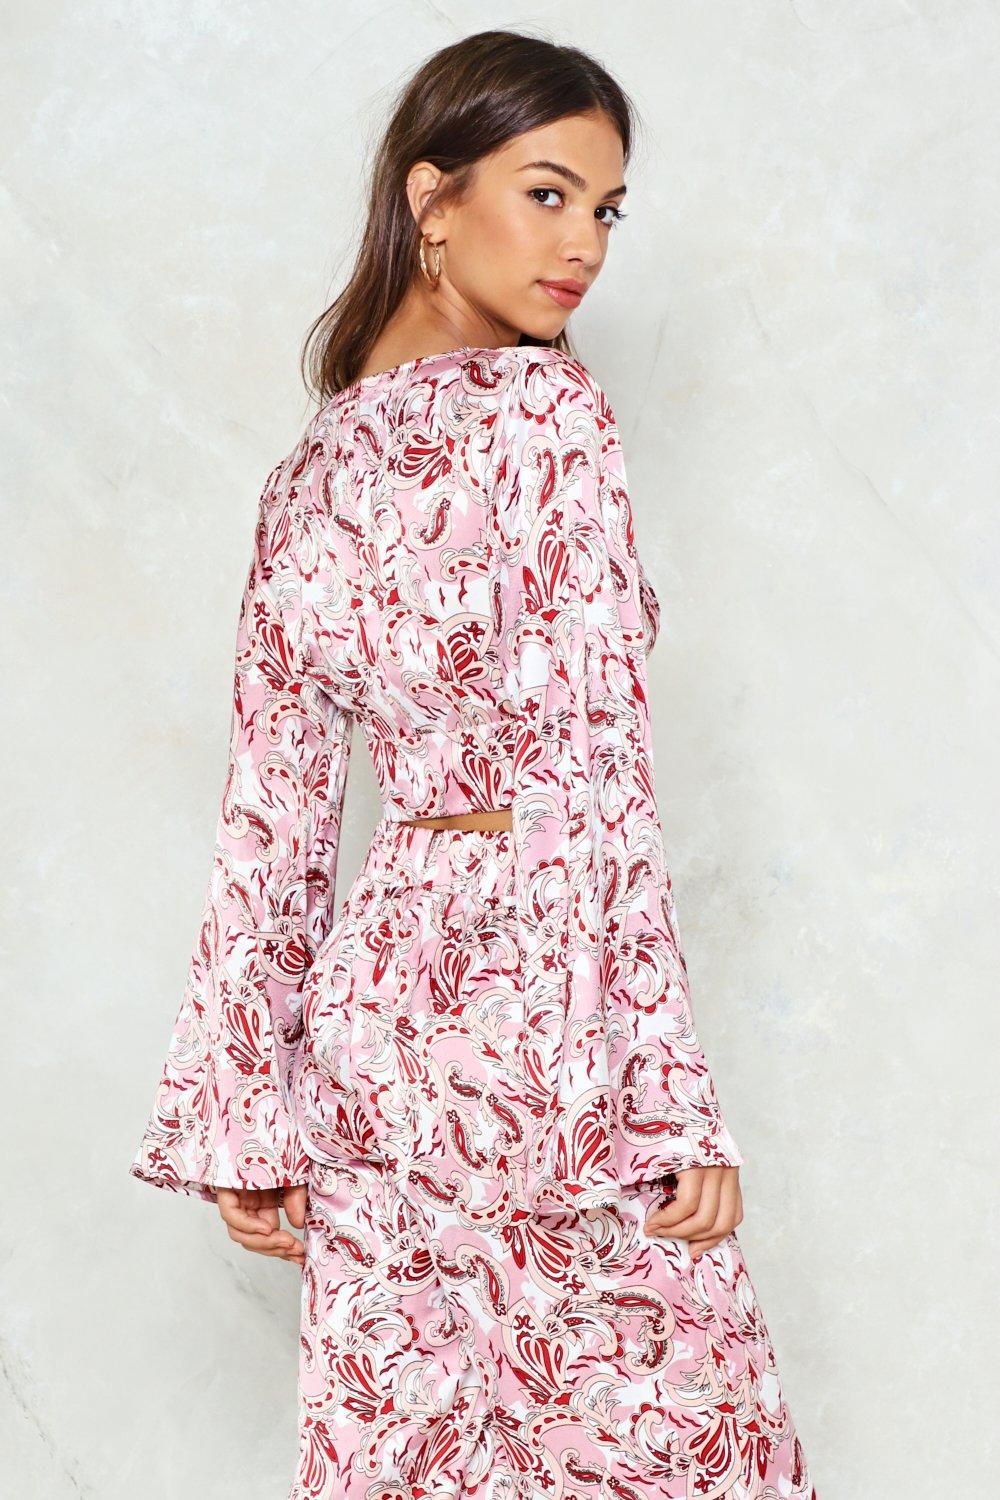 Exceptionnel Paisley Attention Satin Crop Top   Shop Clothes at Nasty Gal! HL07